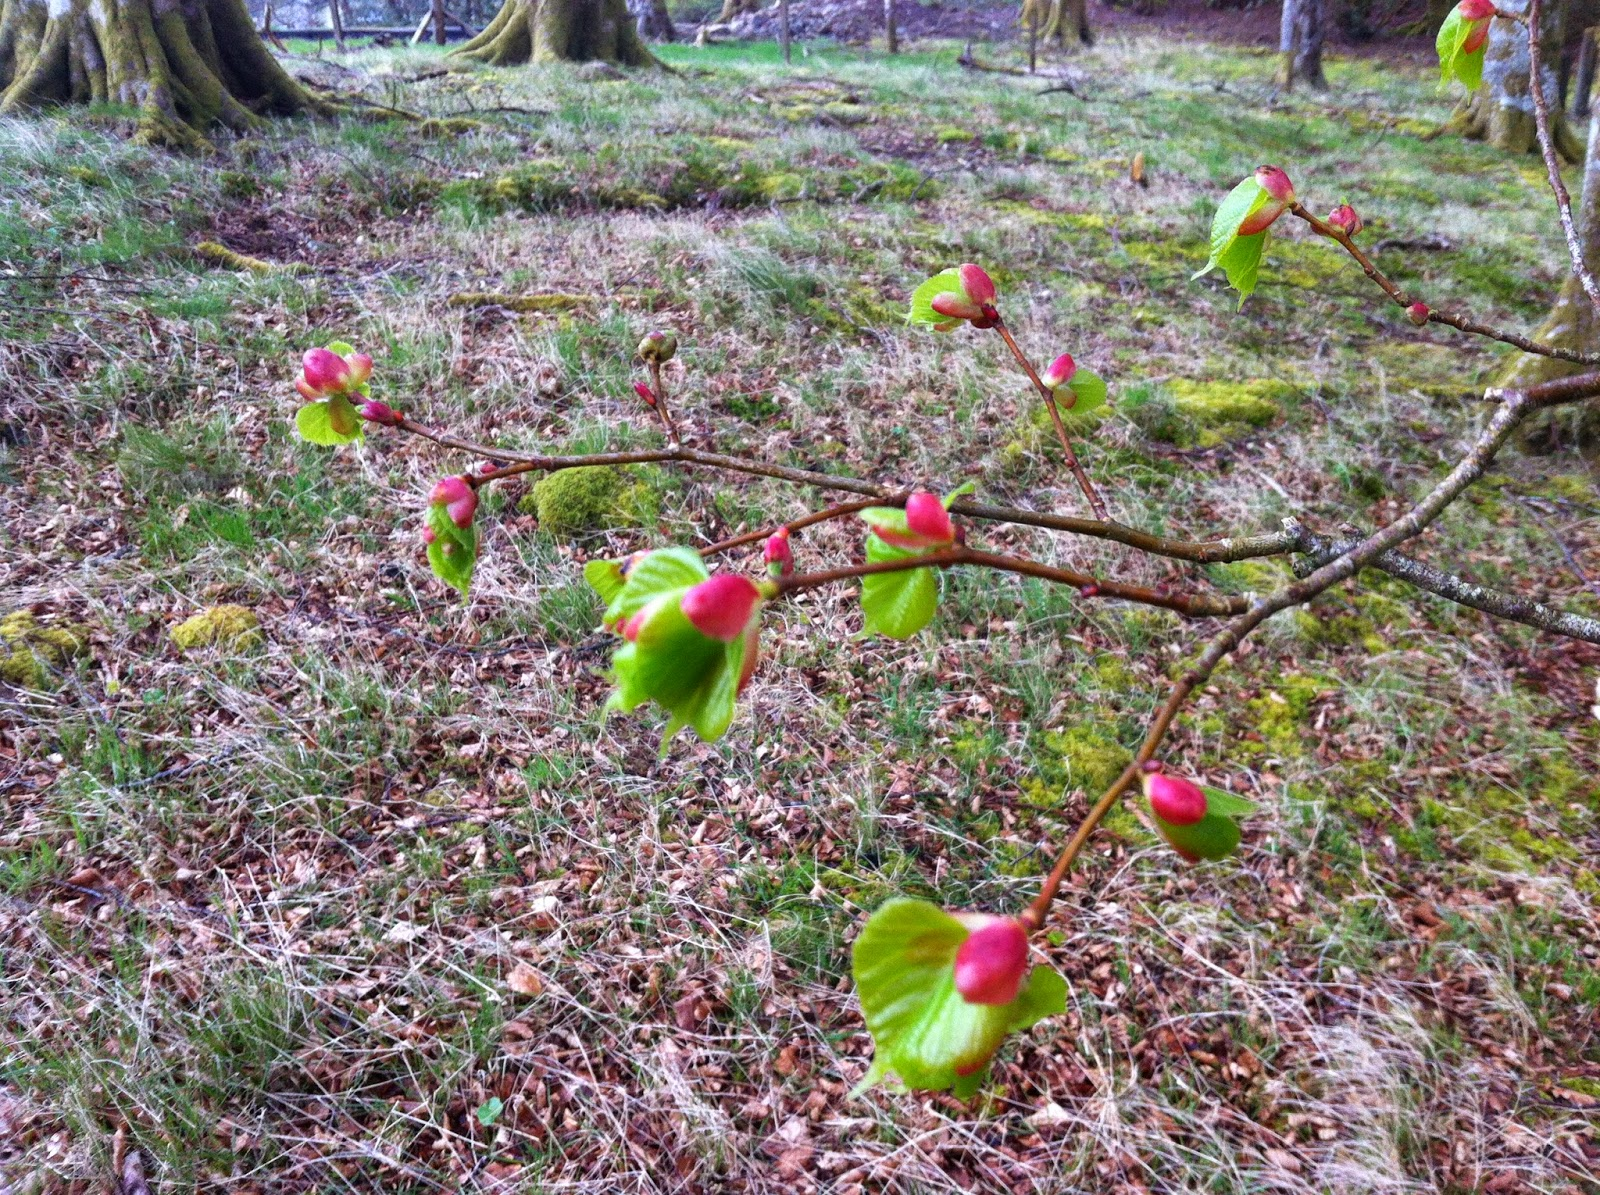 An image of the new growing tips of beech trees in the spring which are edible raw